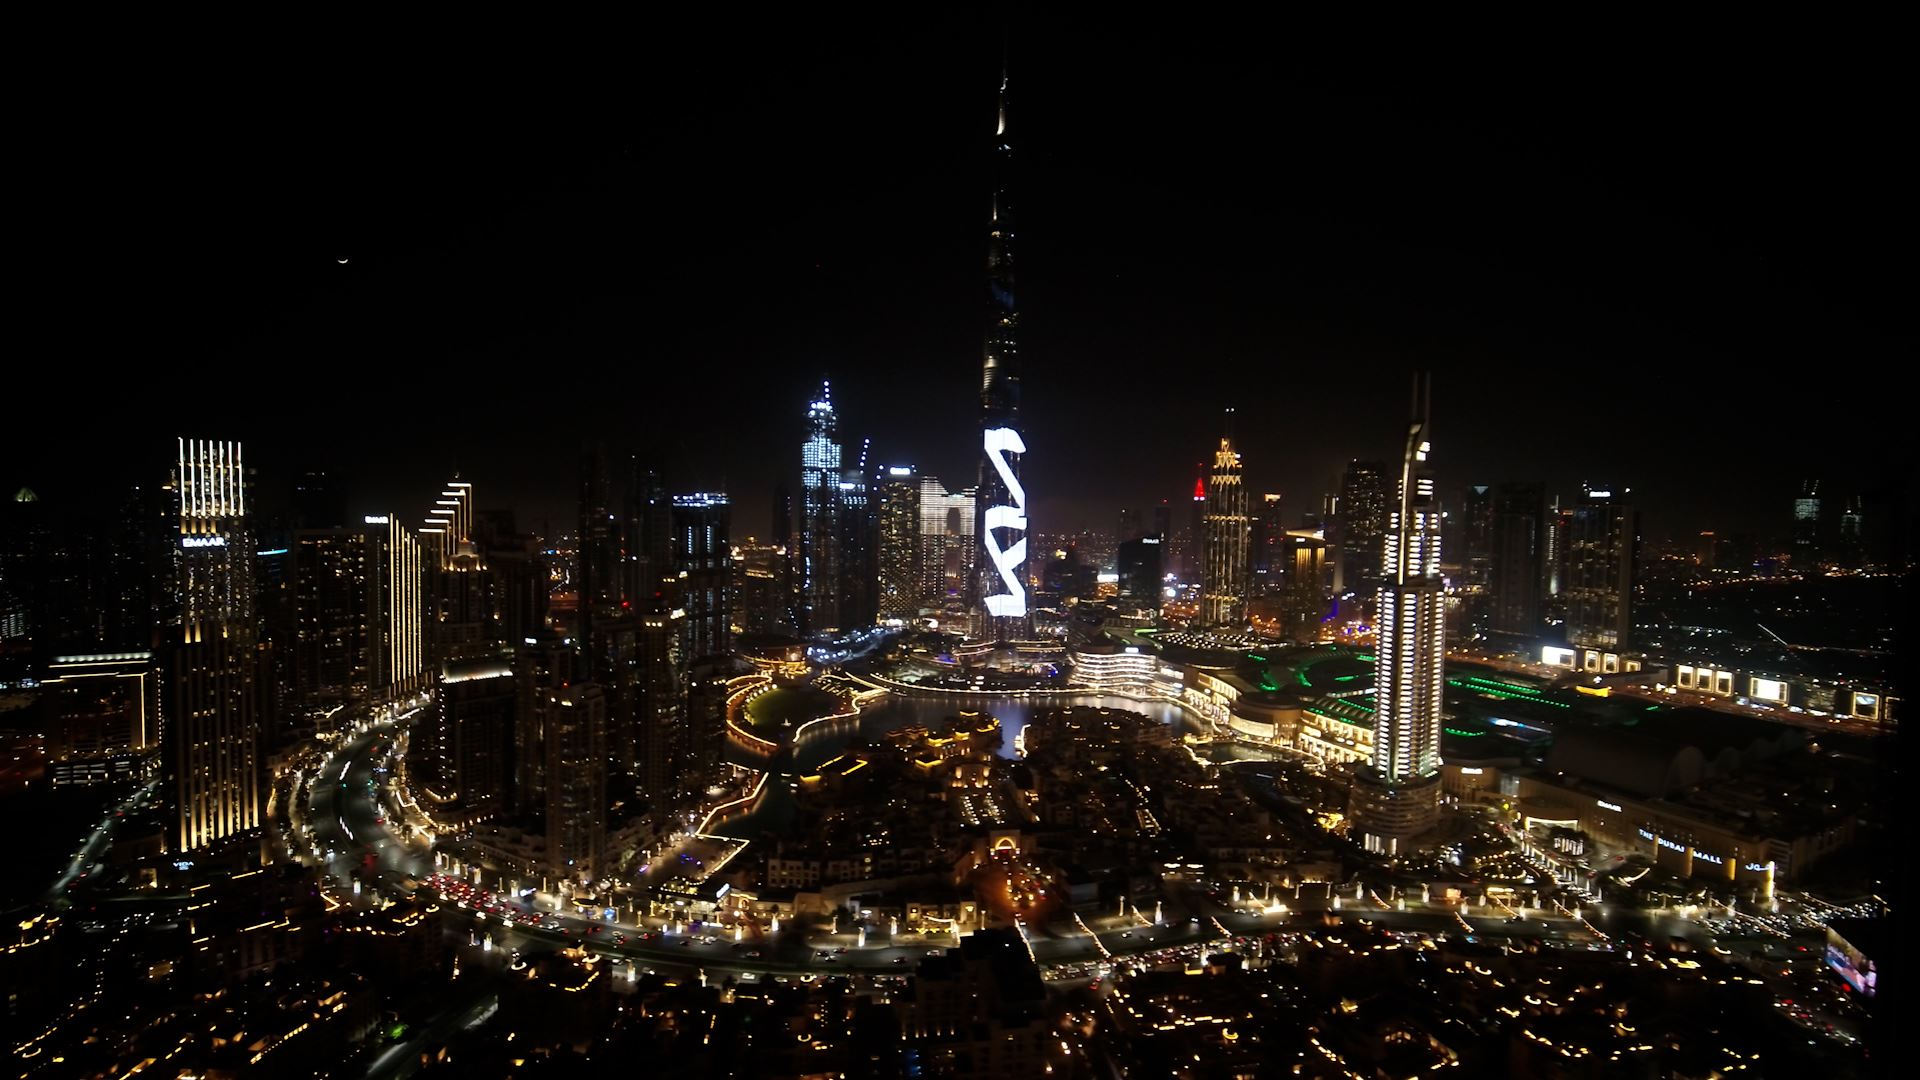 Kia celebrates its brand transformation in the Middle East with spectacular LED show - Image 2